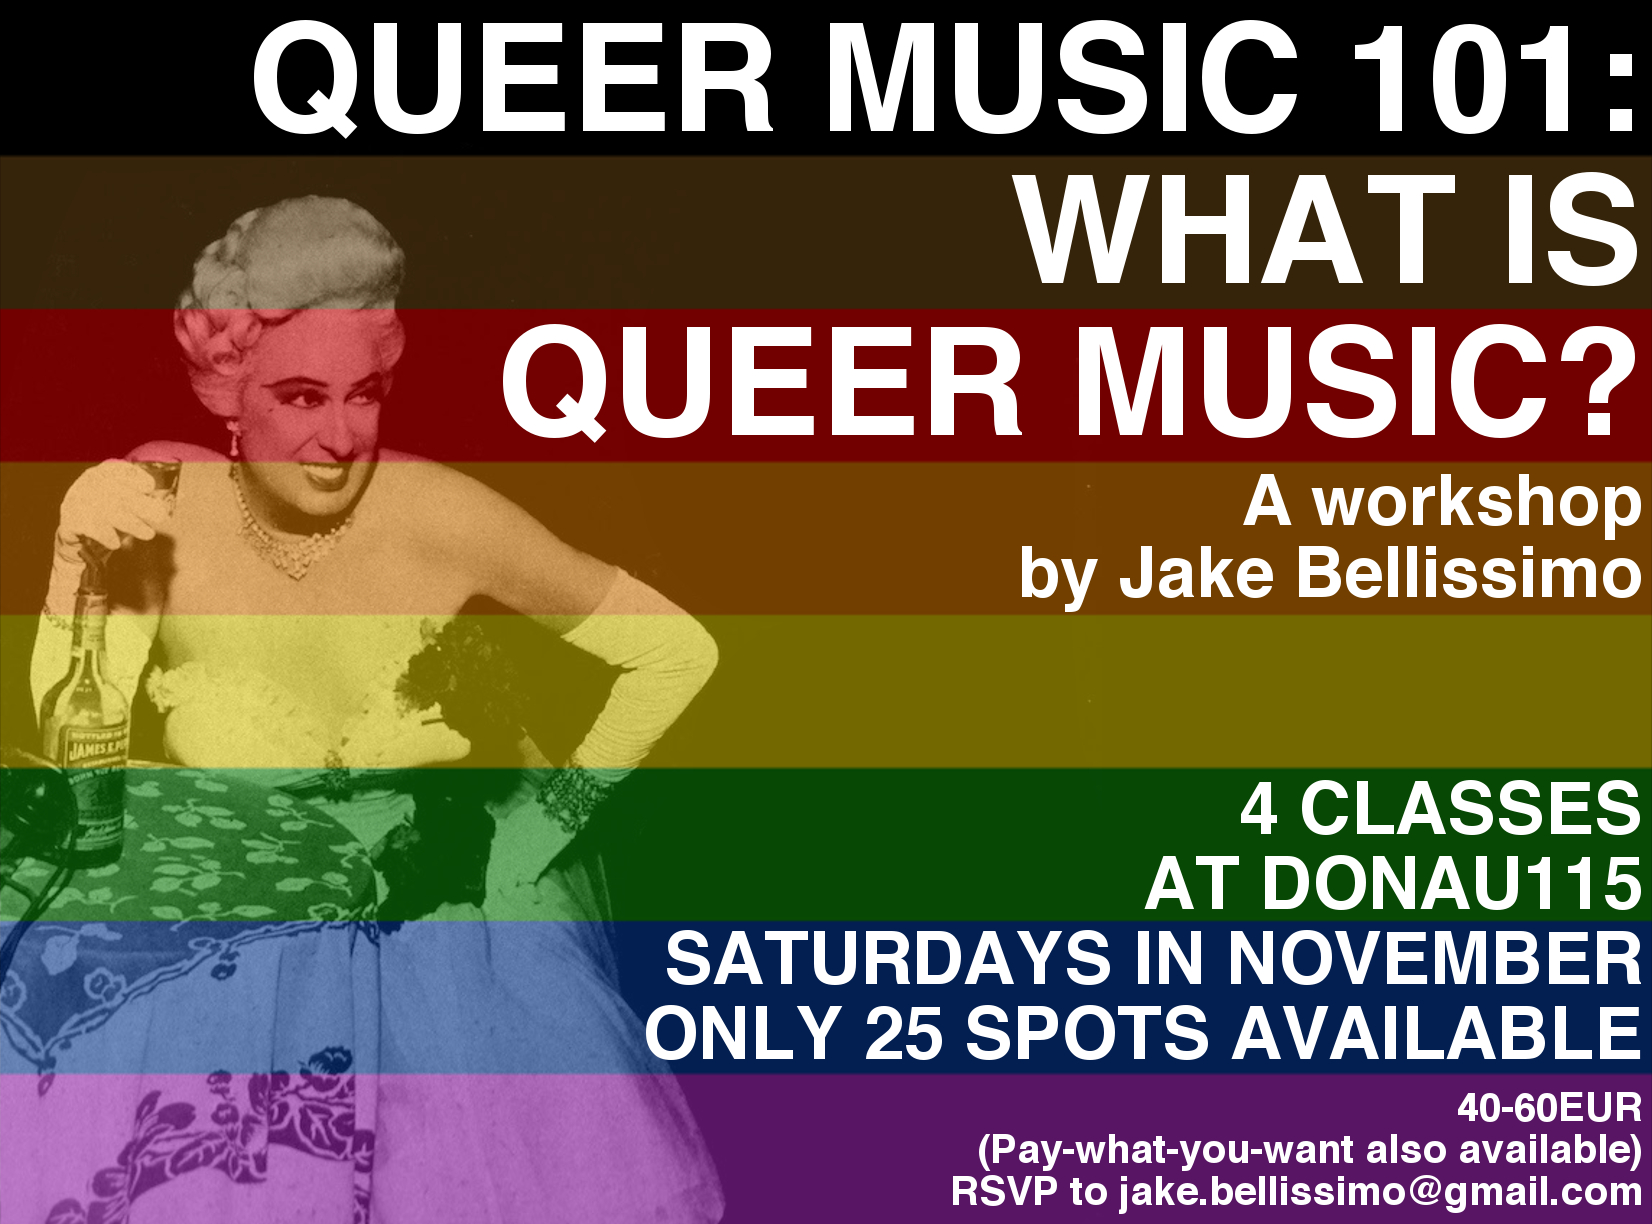 Queer Music 101